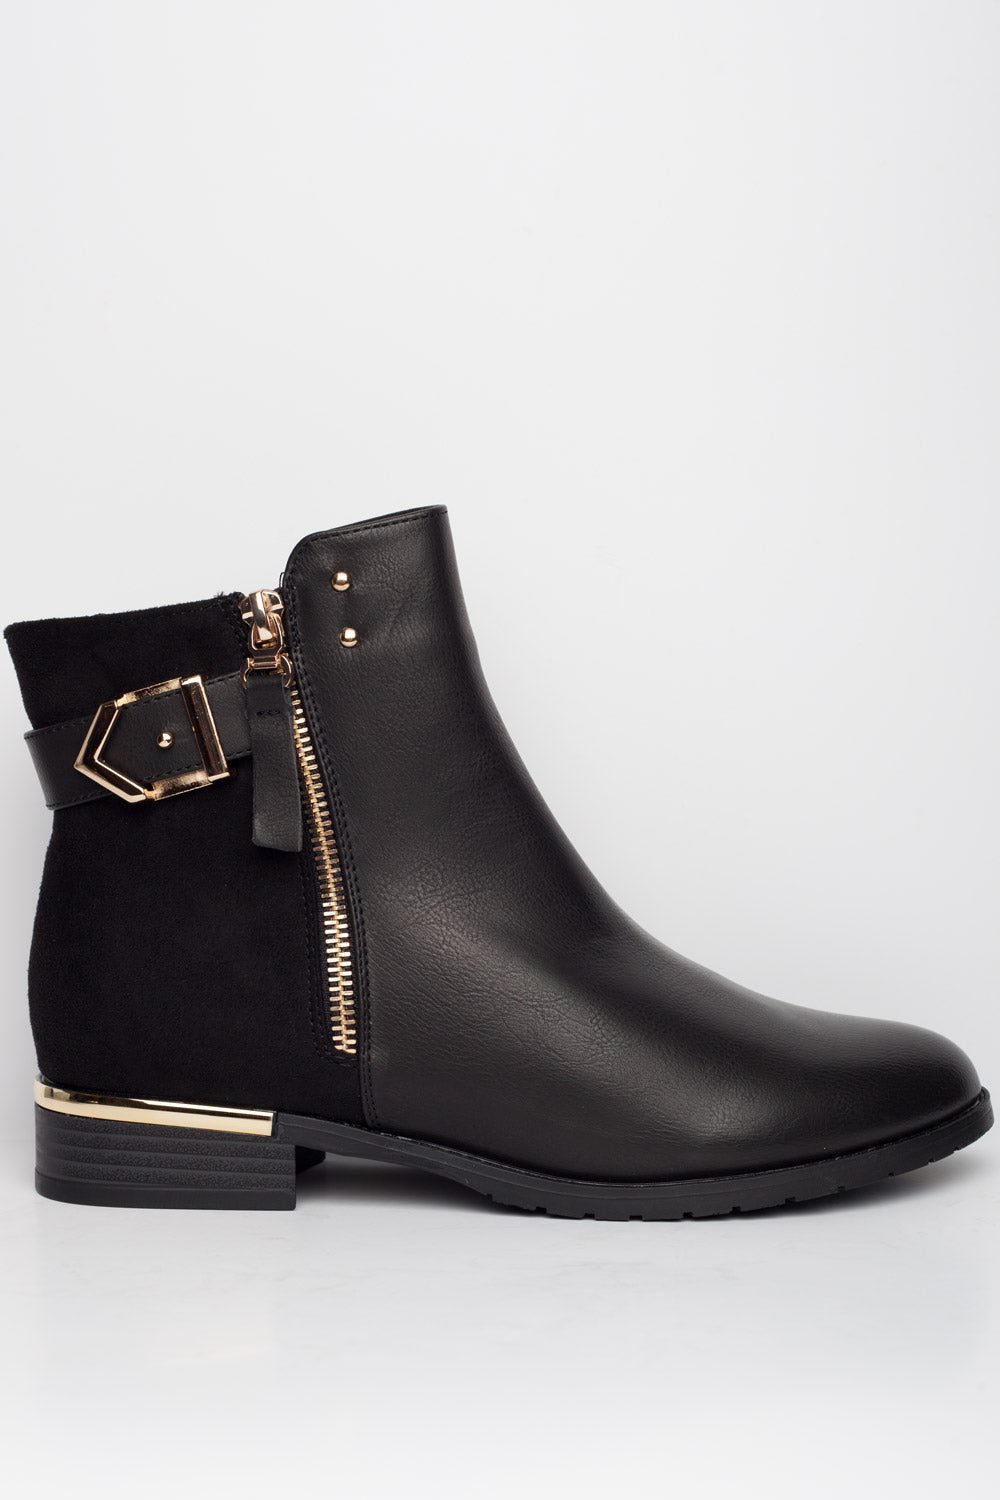 black ankle boots